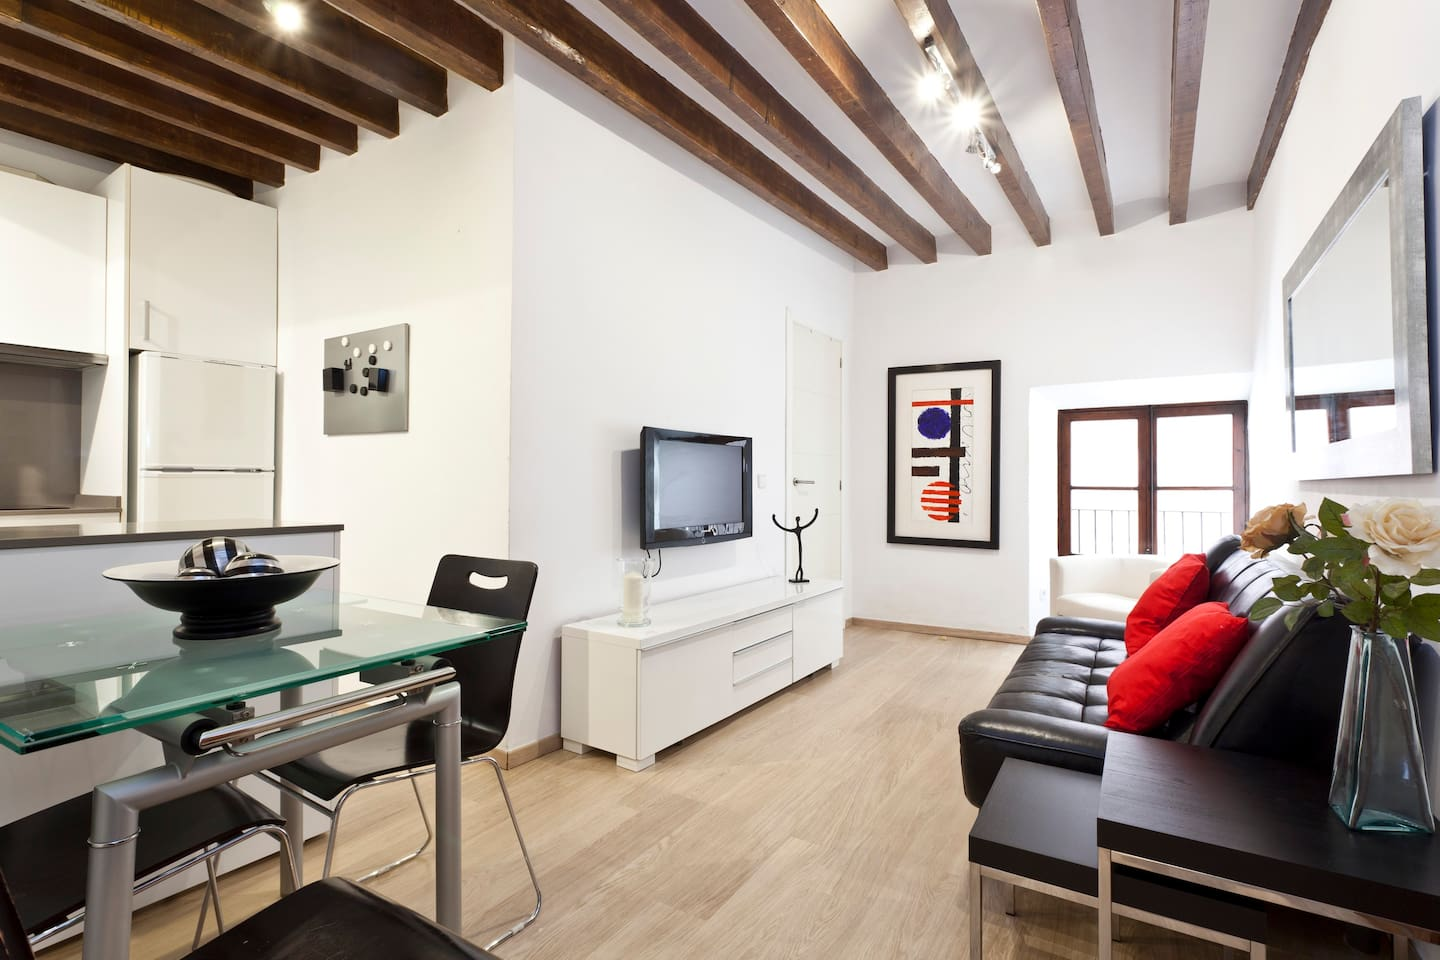 2 BEDROOM APARTMENT, AT THE BEST AREA OF PALMA